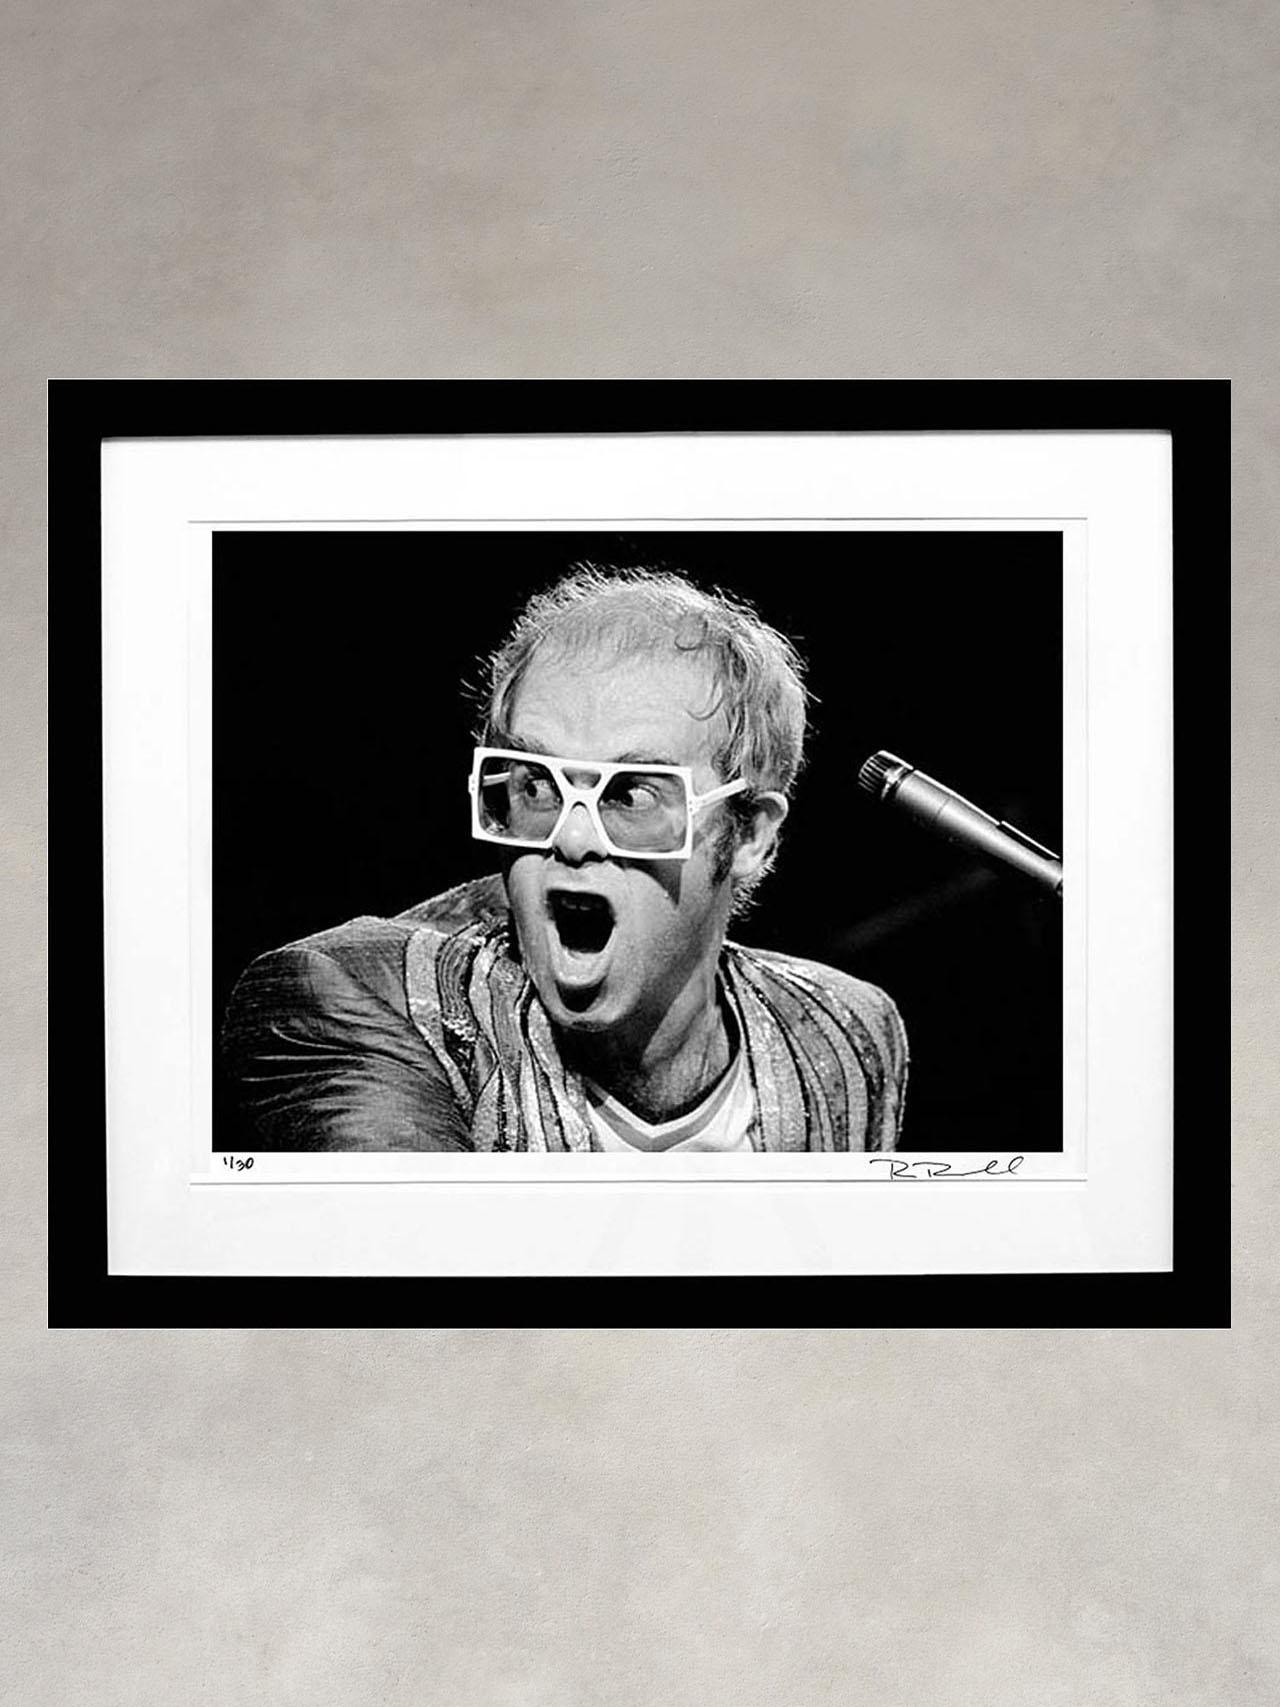 Elton John by Ron Pownall